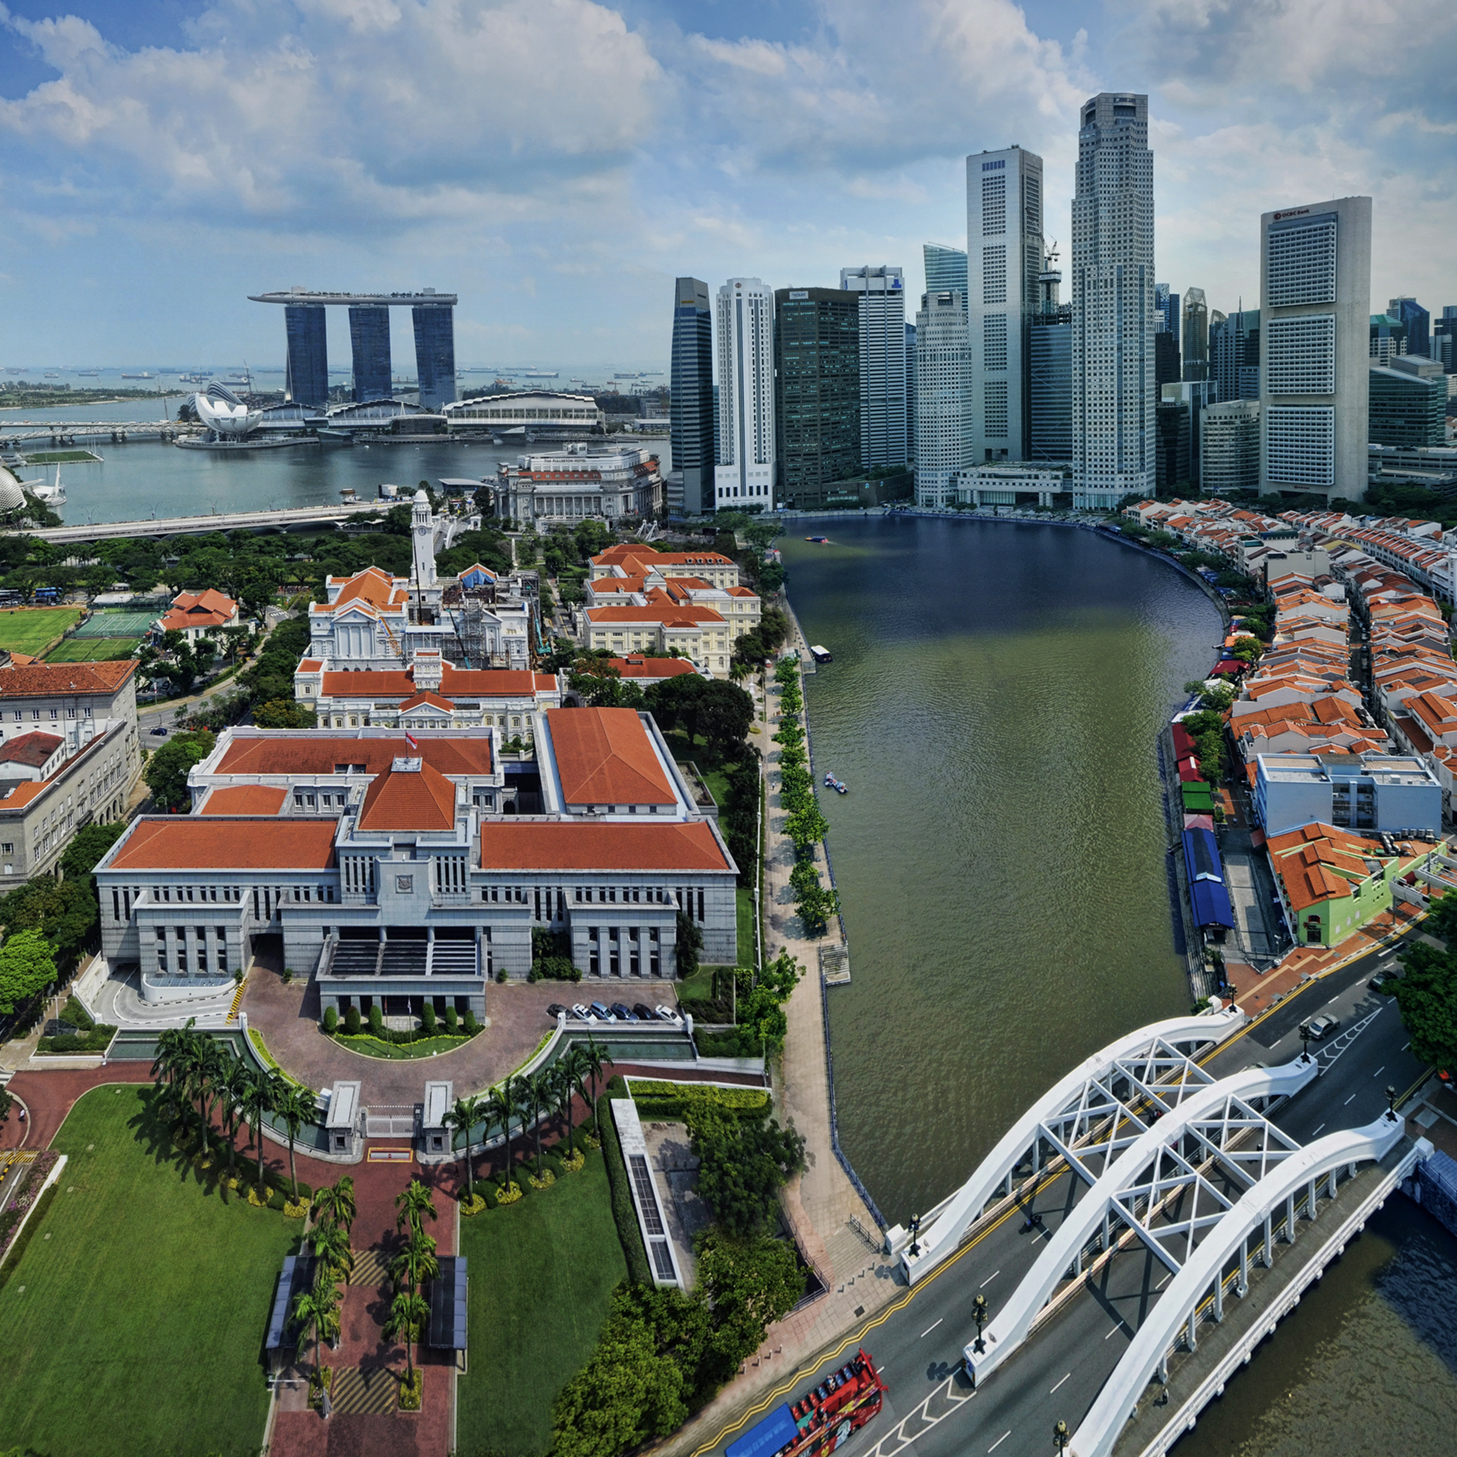 Singapores 7 Unique Attractions Lokopoko Travel Kaos Souvenir Singapore 5 Https Uploadwikimediaorg Wikipedia Commons 2 2d River Where It All Begins